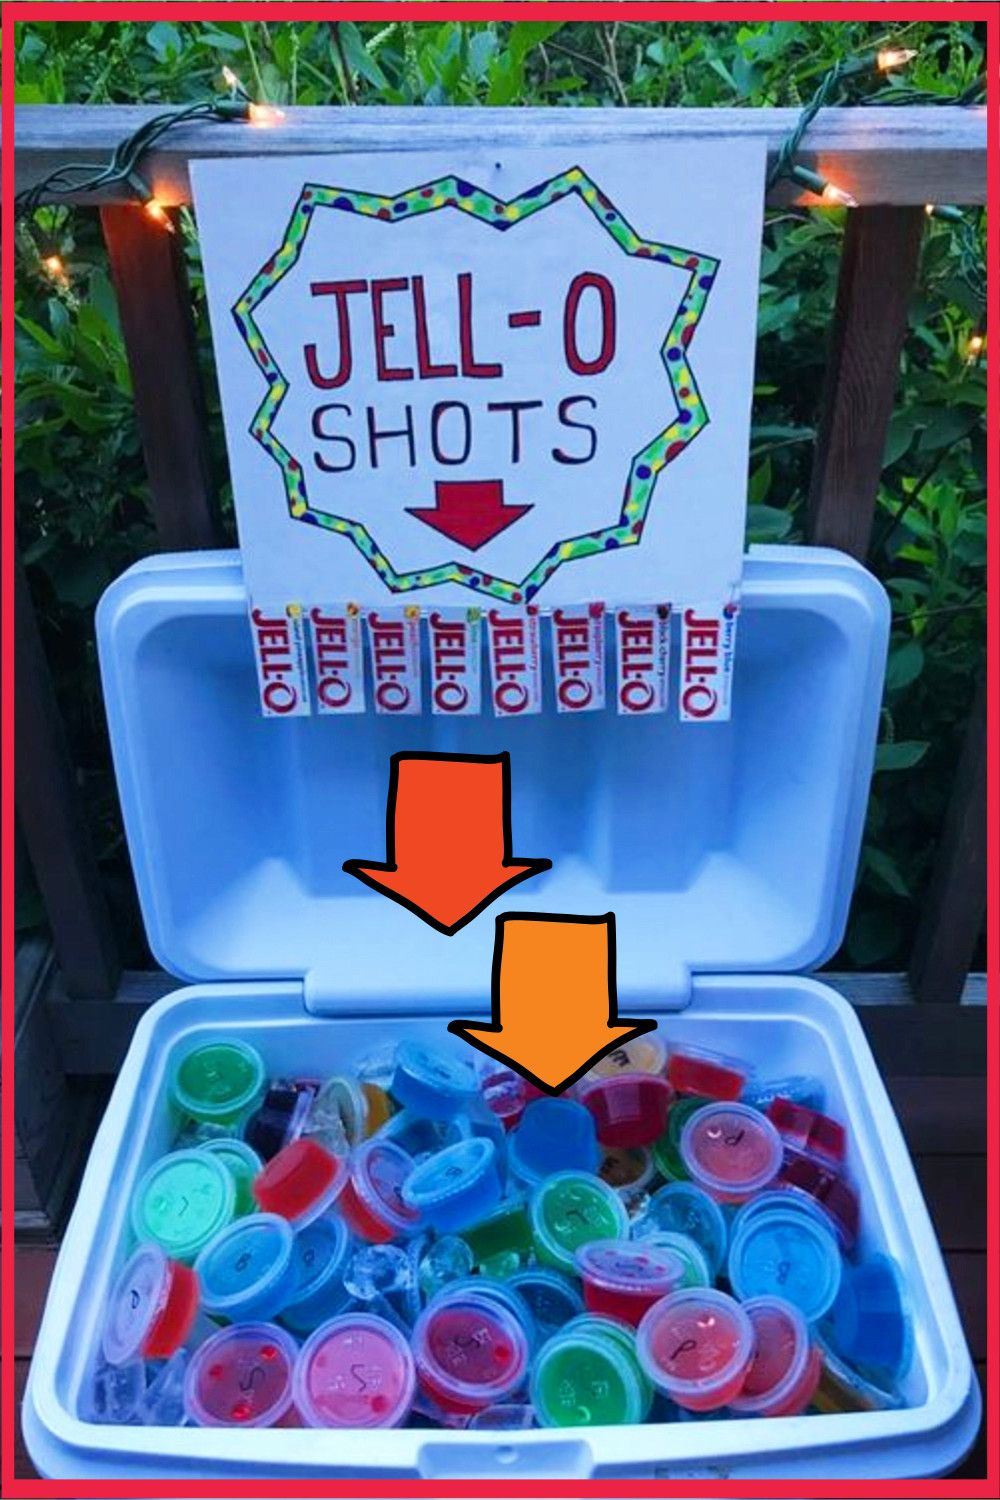 Labor Day Party Ideas - Fun Cookout Food and Drinks Recipes - BBQ Cookout food ideas - try this easy jello shots recipes to learn how to make jello shots in a cooler for a cookout party, pool party, beach party (spring break!) or any summer party.